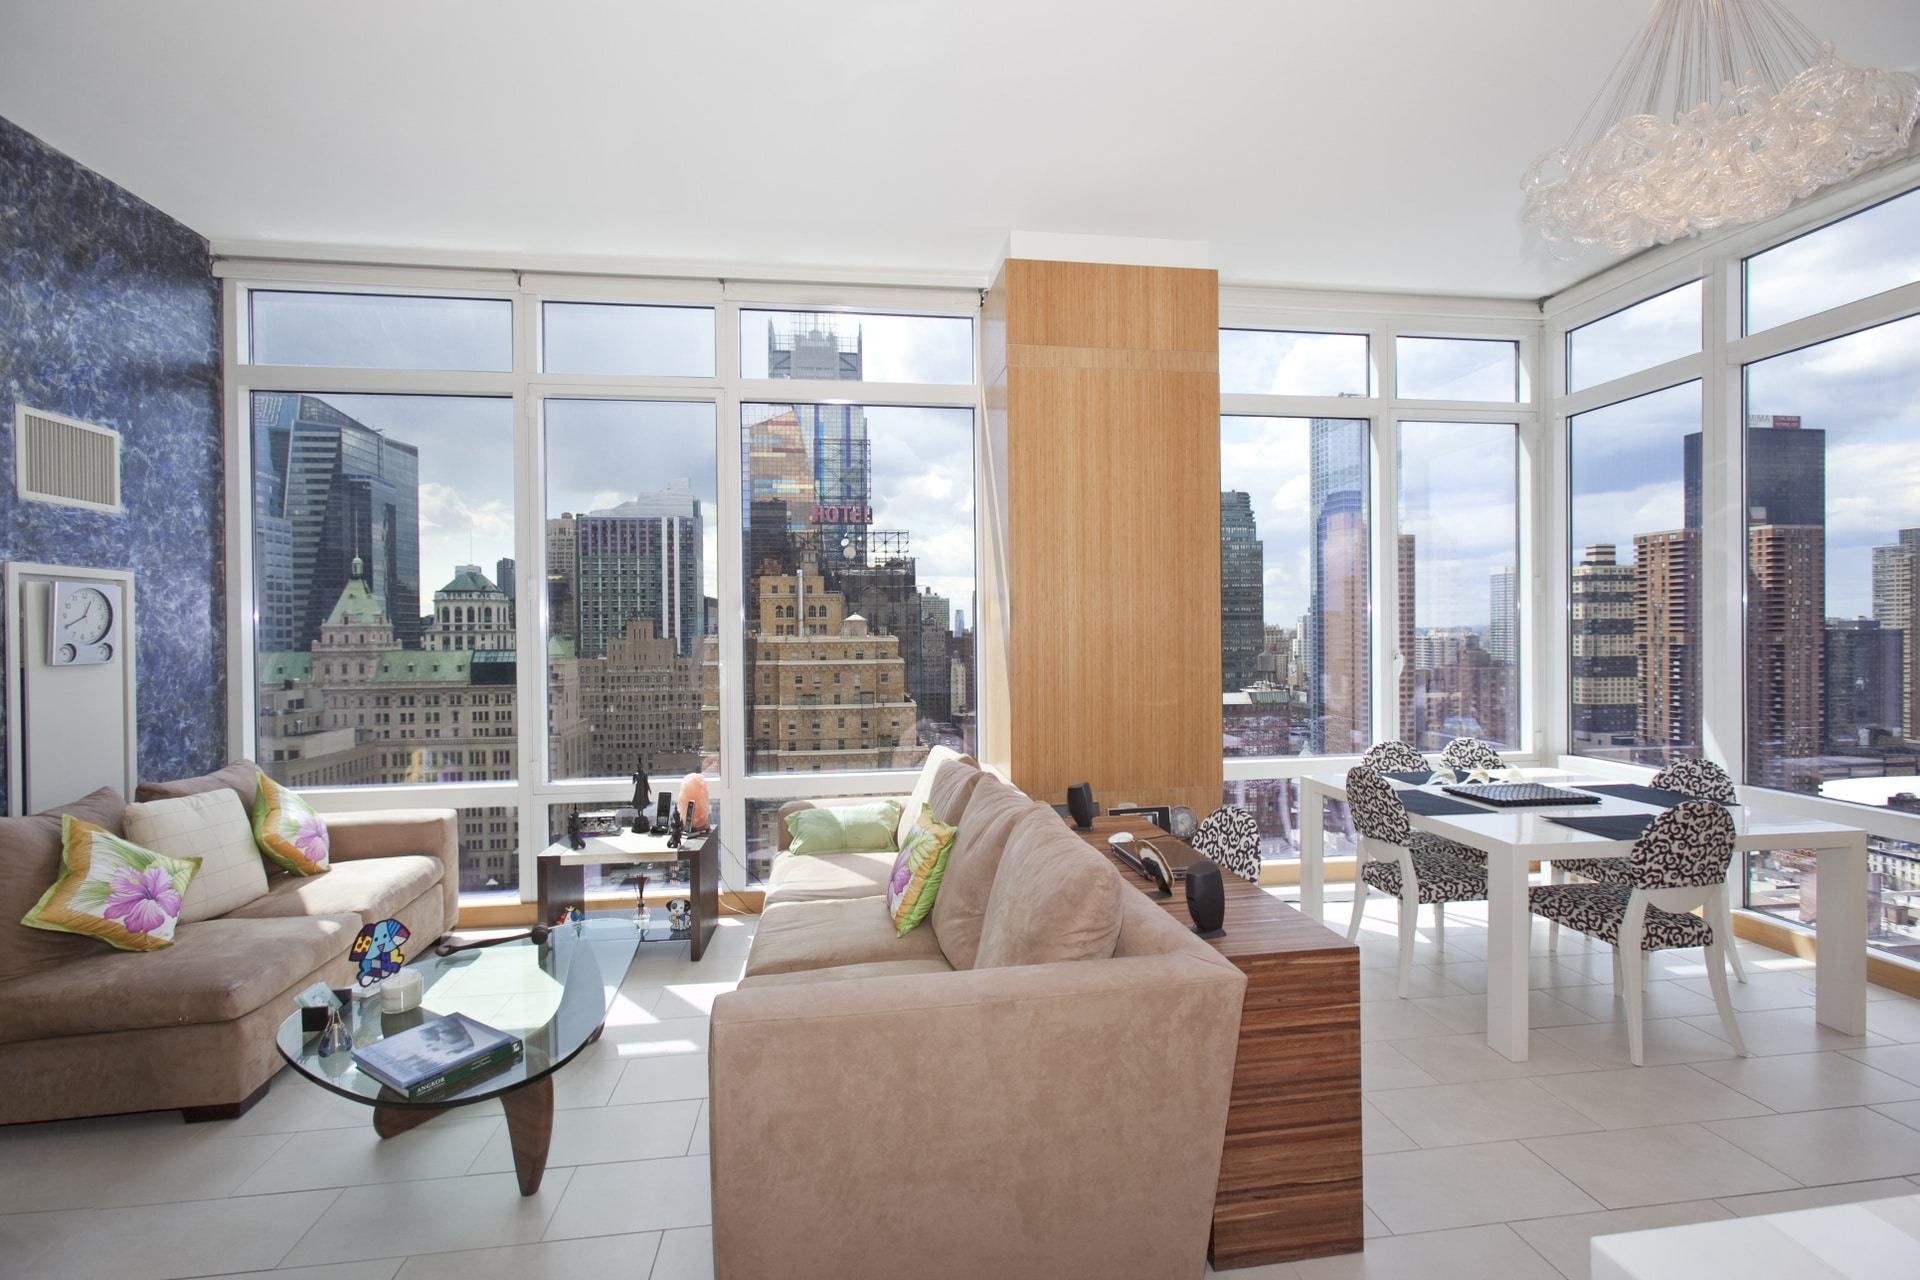 Immobilier de prestige new york - Appartement a vendre new york ...